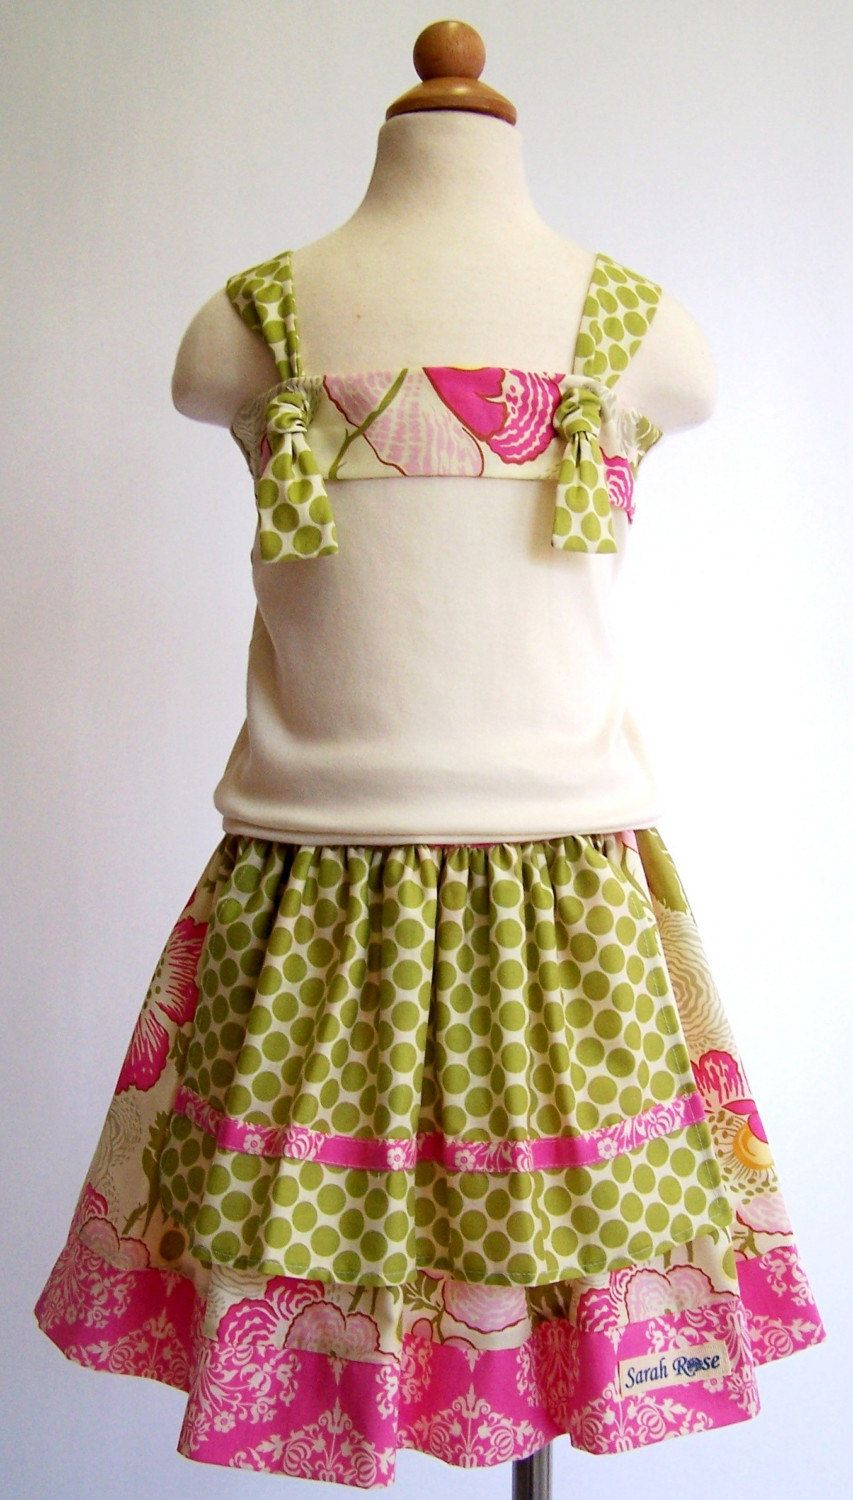 Girls Alex Apron Twirl Skirt and Knot Tank by SarahRoseBoutique.